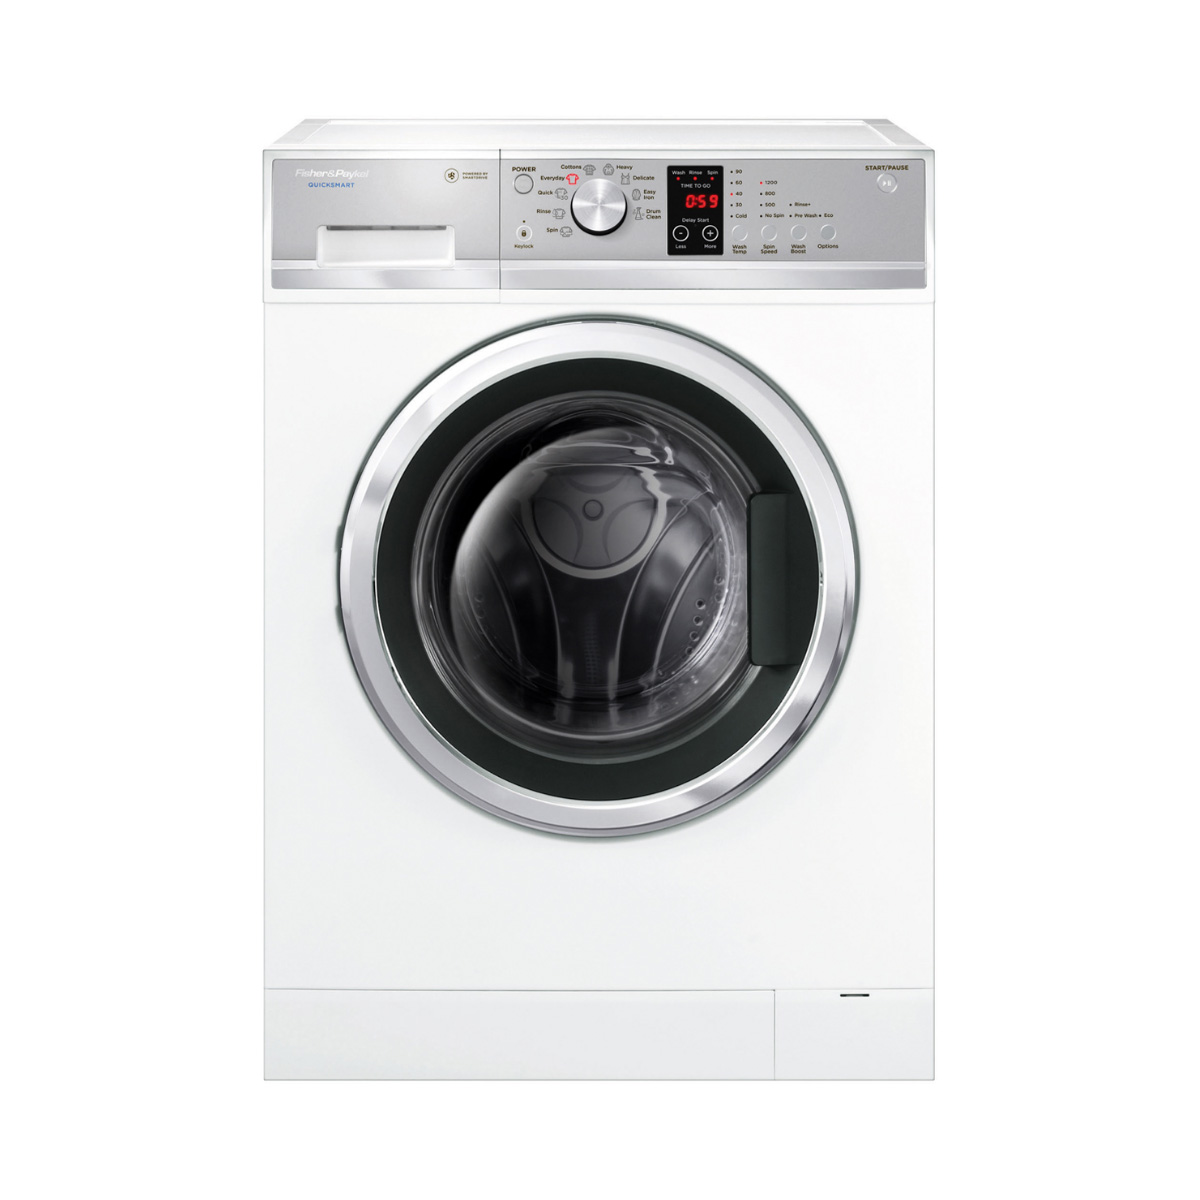 Fisher & Paykel WH7560J3 QuickSmart 7.5 kg Front Load Washing Machine